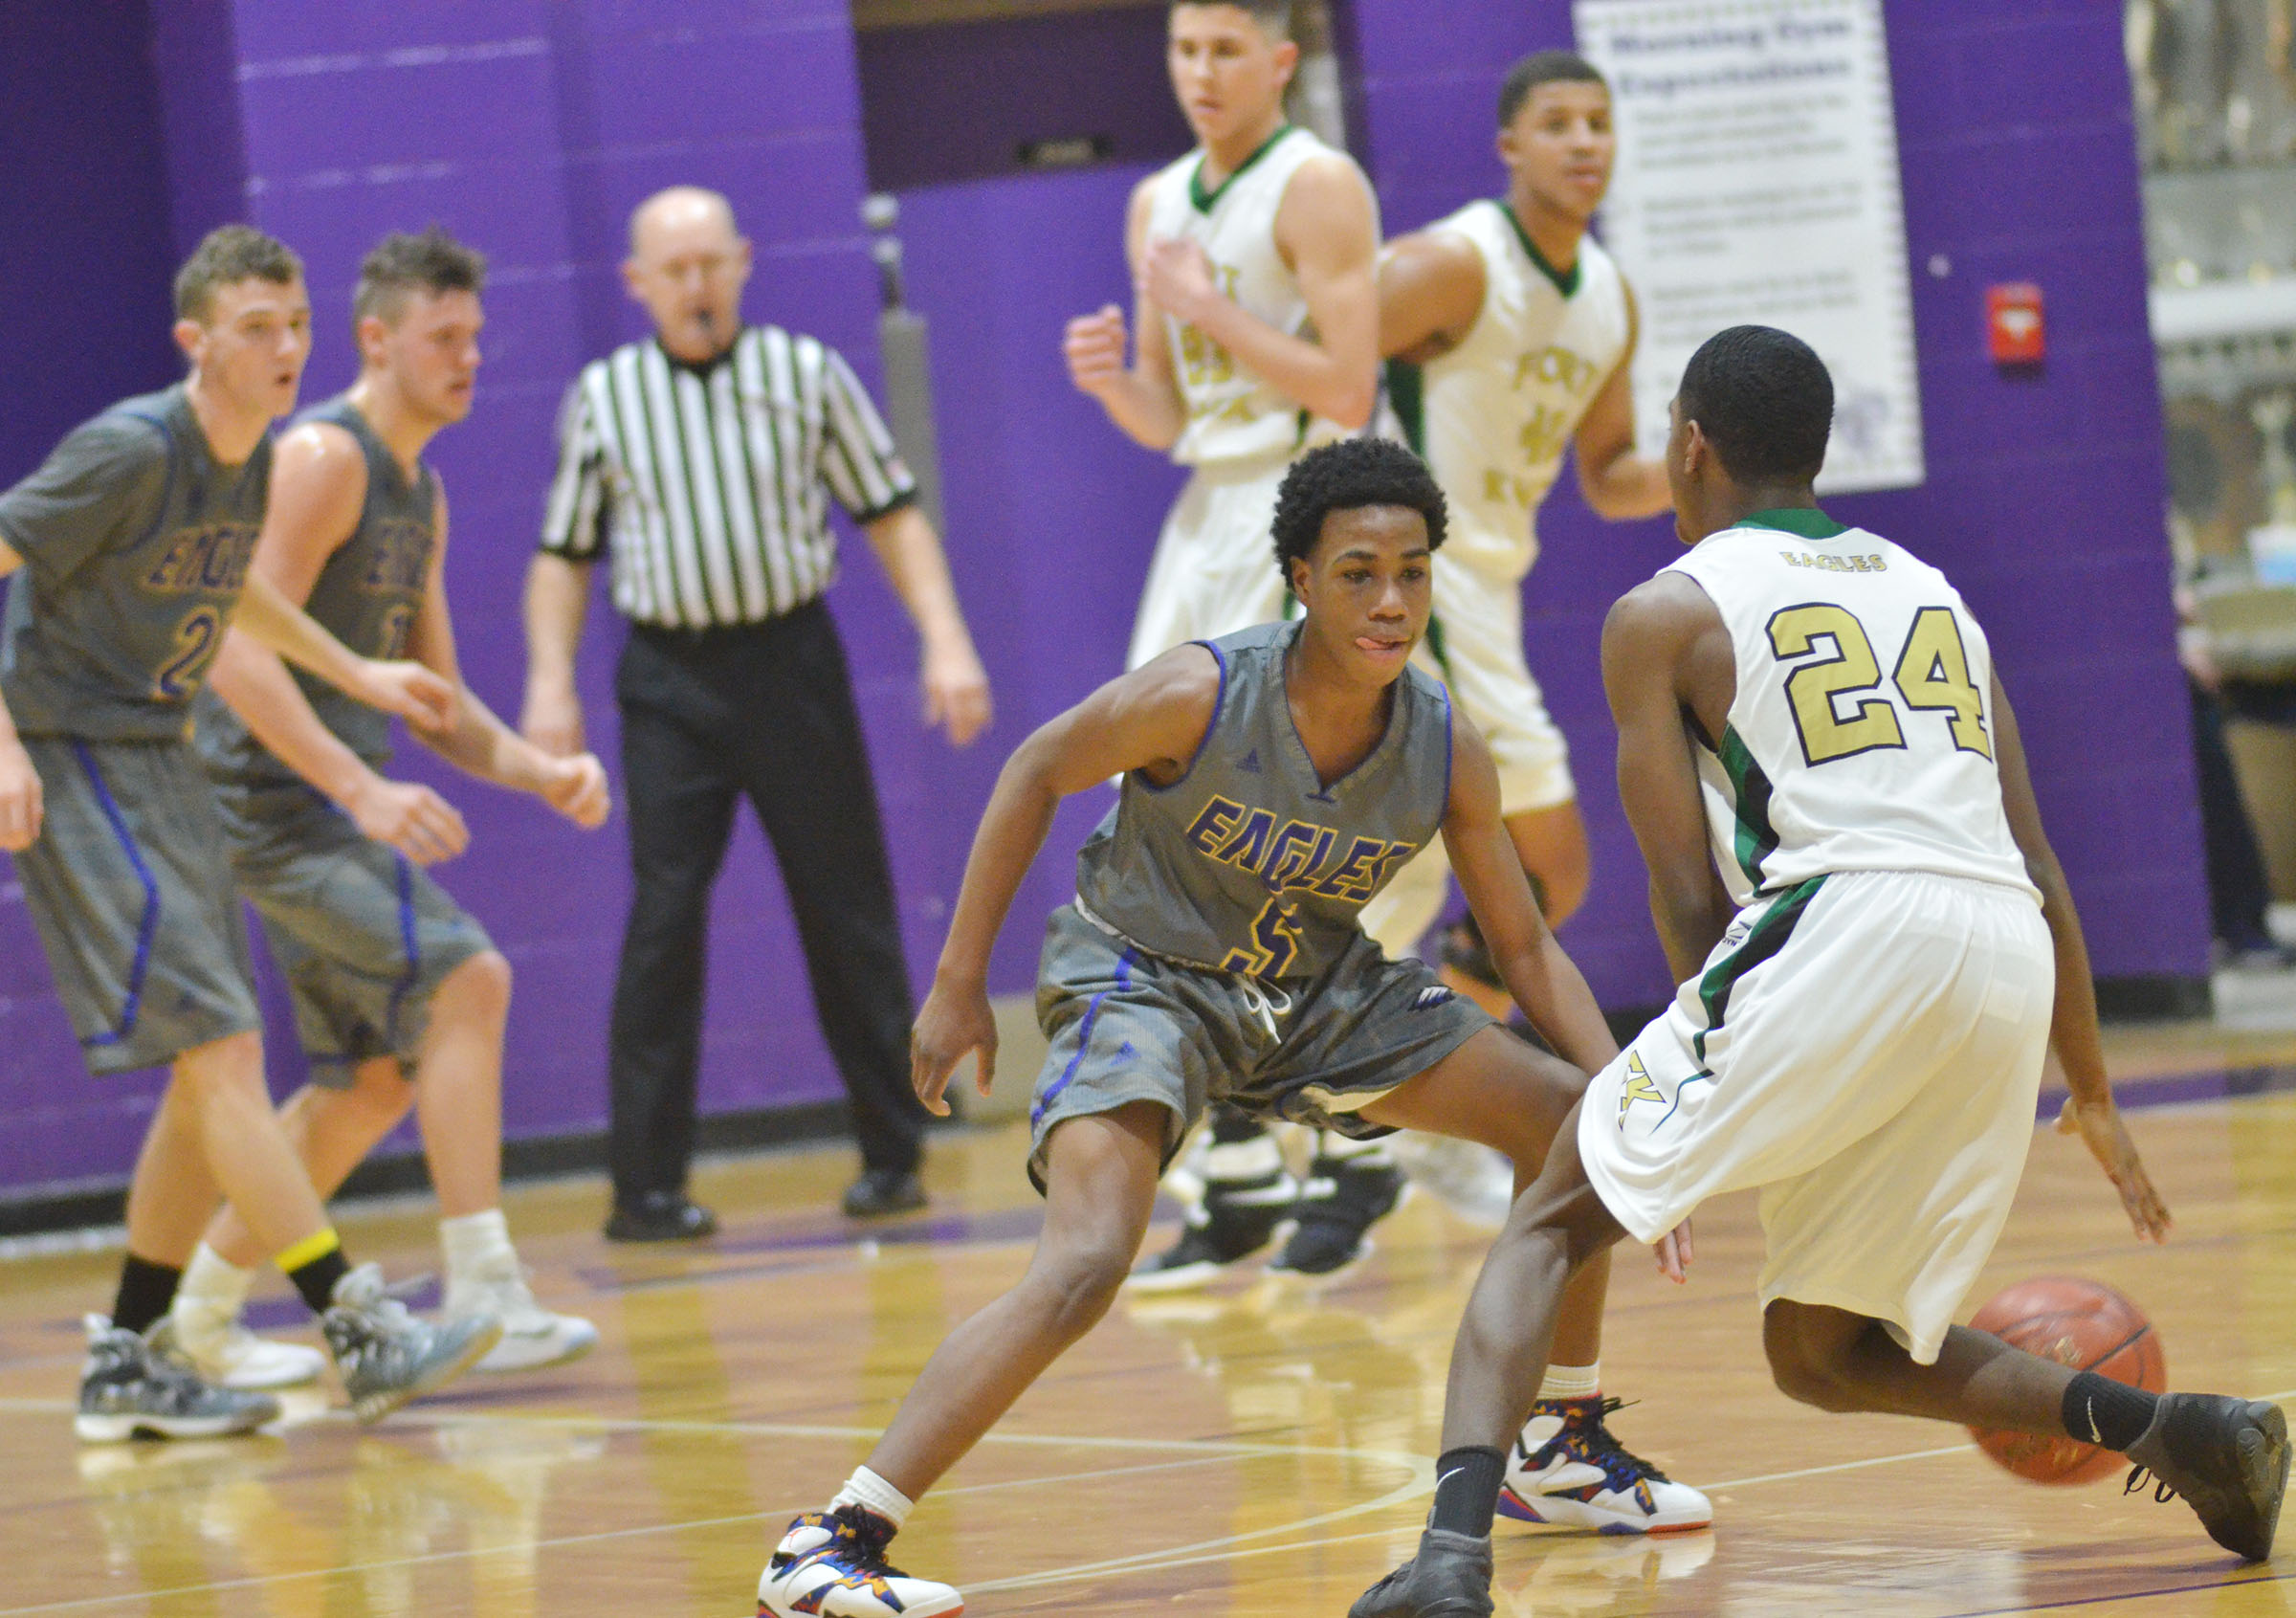 CHS freshman Malachi Corley plays defense.